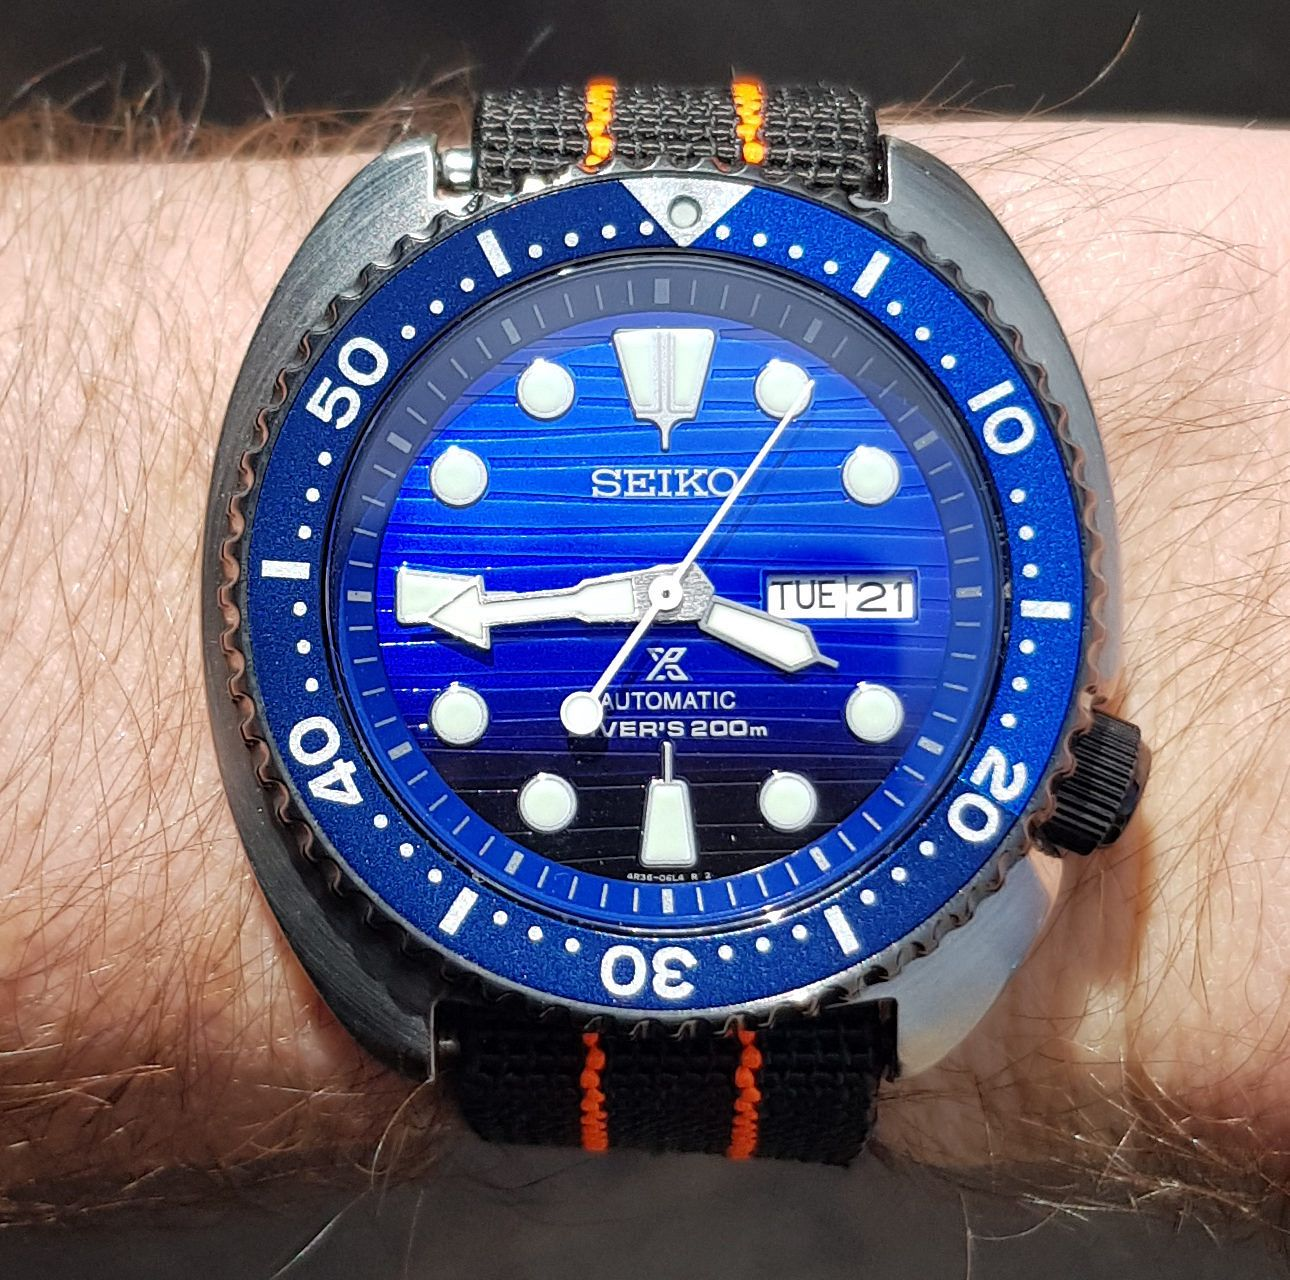 Weekend watch spotting 4